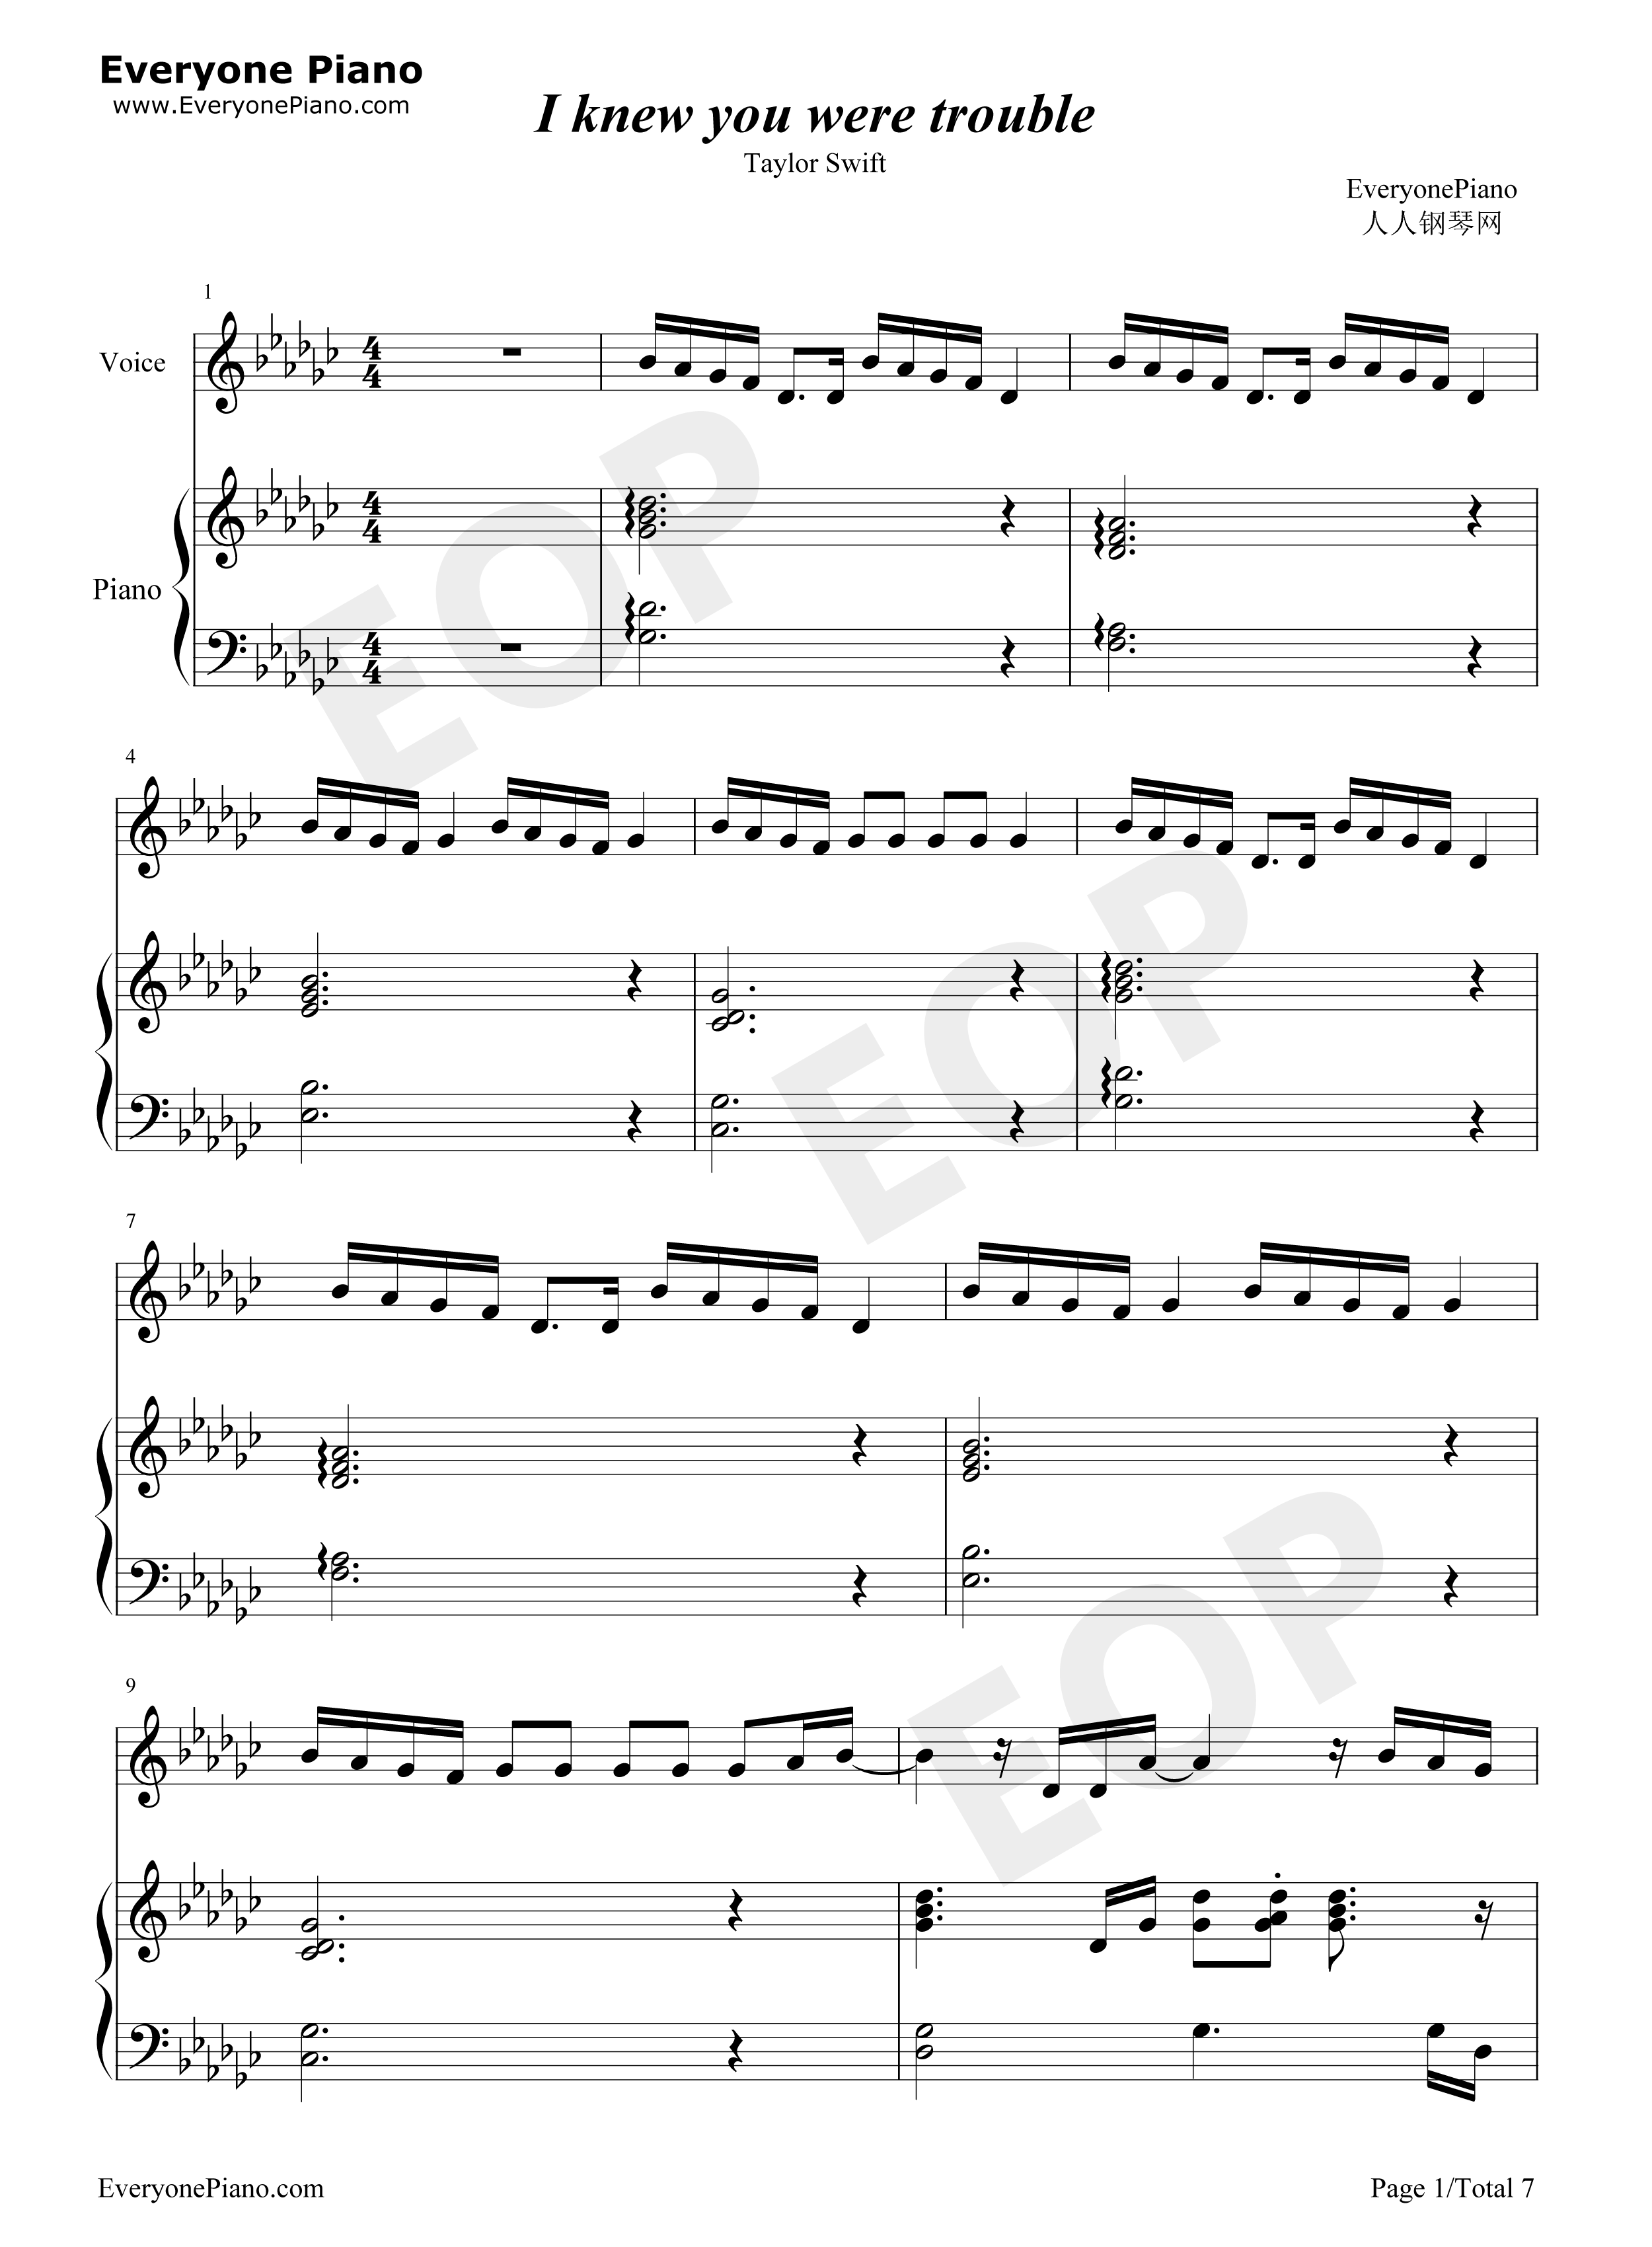 I knew you were trouble taylor swift stave preview 1 free piano listen now print sheet i knew you were trouble taylor swift stave preview 1 hexwebz Images